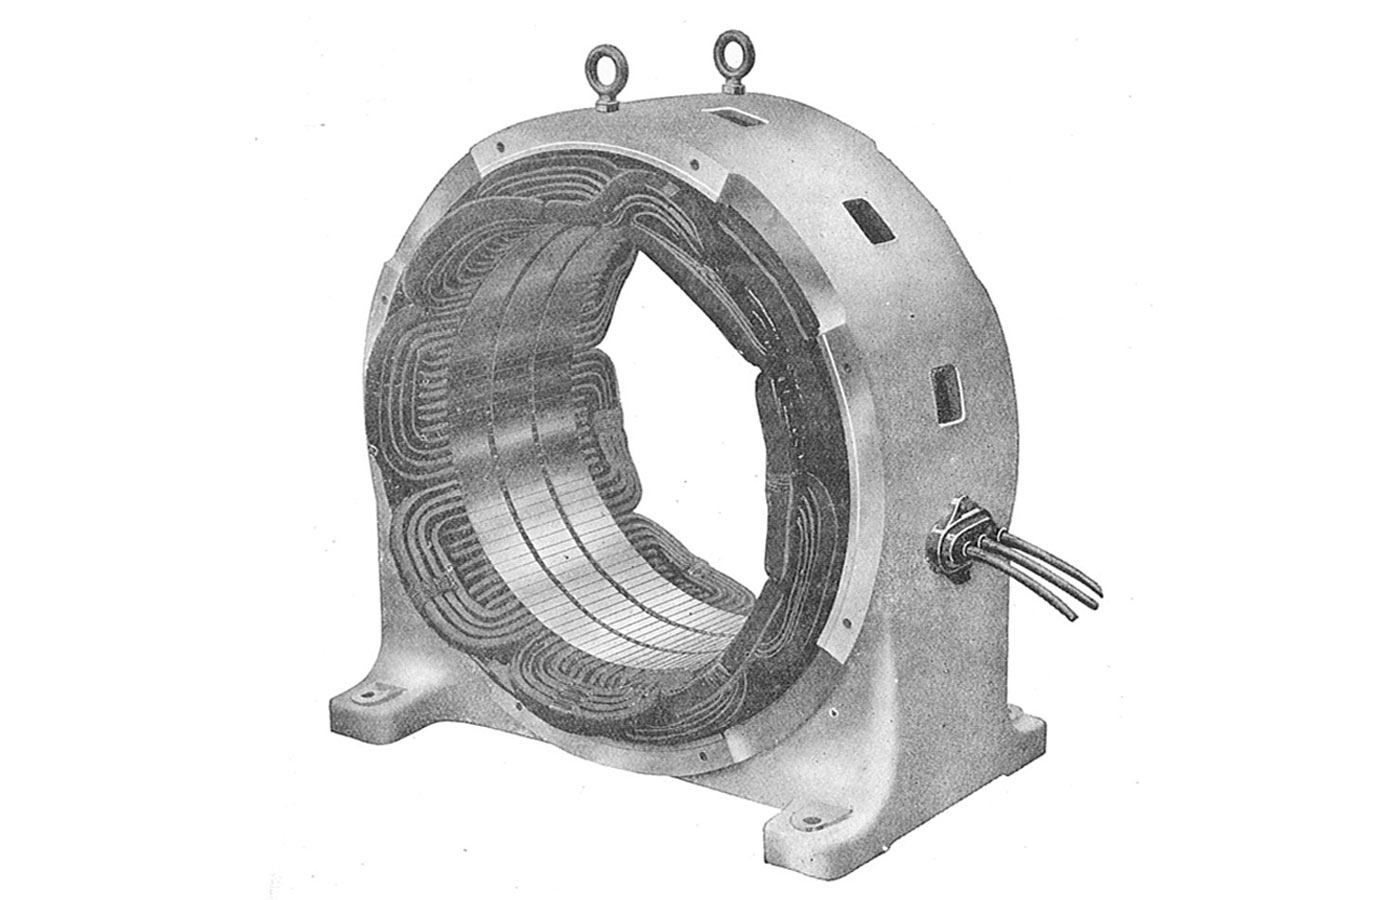 Stator of induction motor.